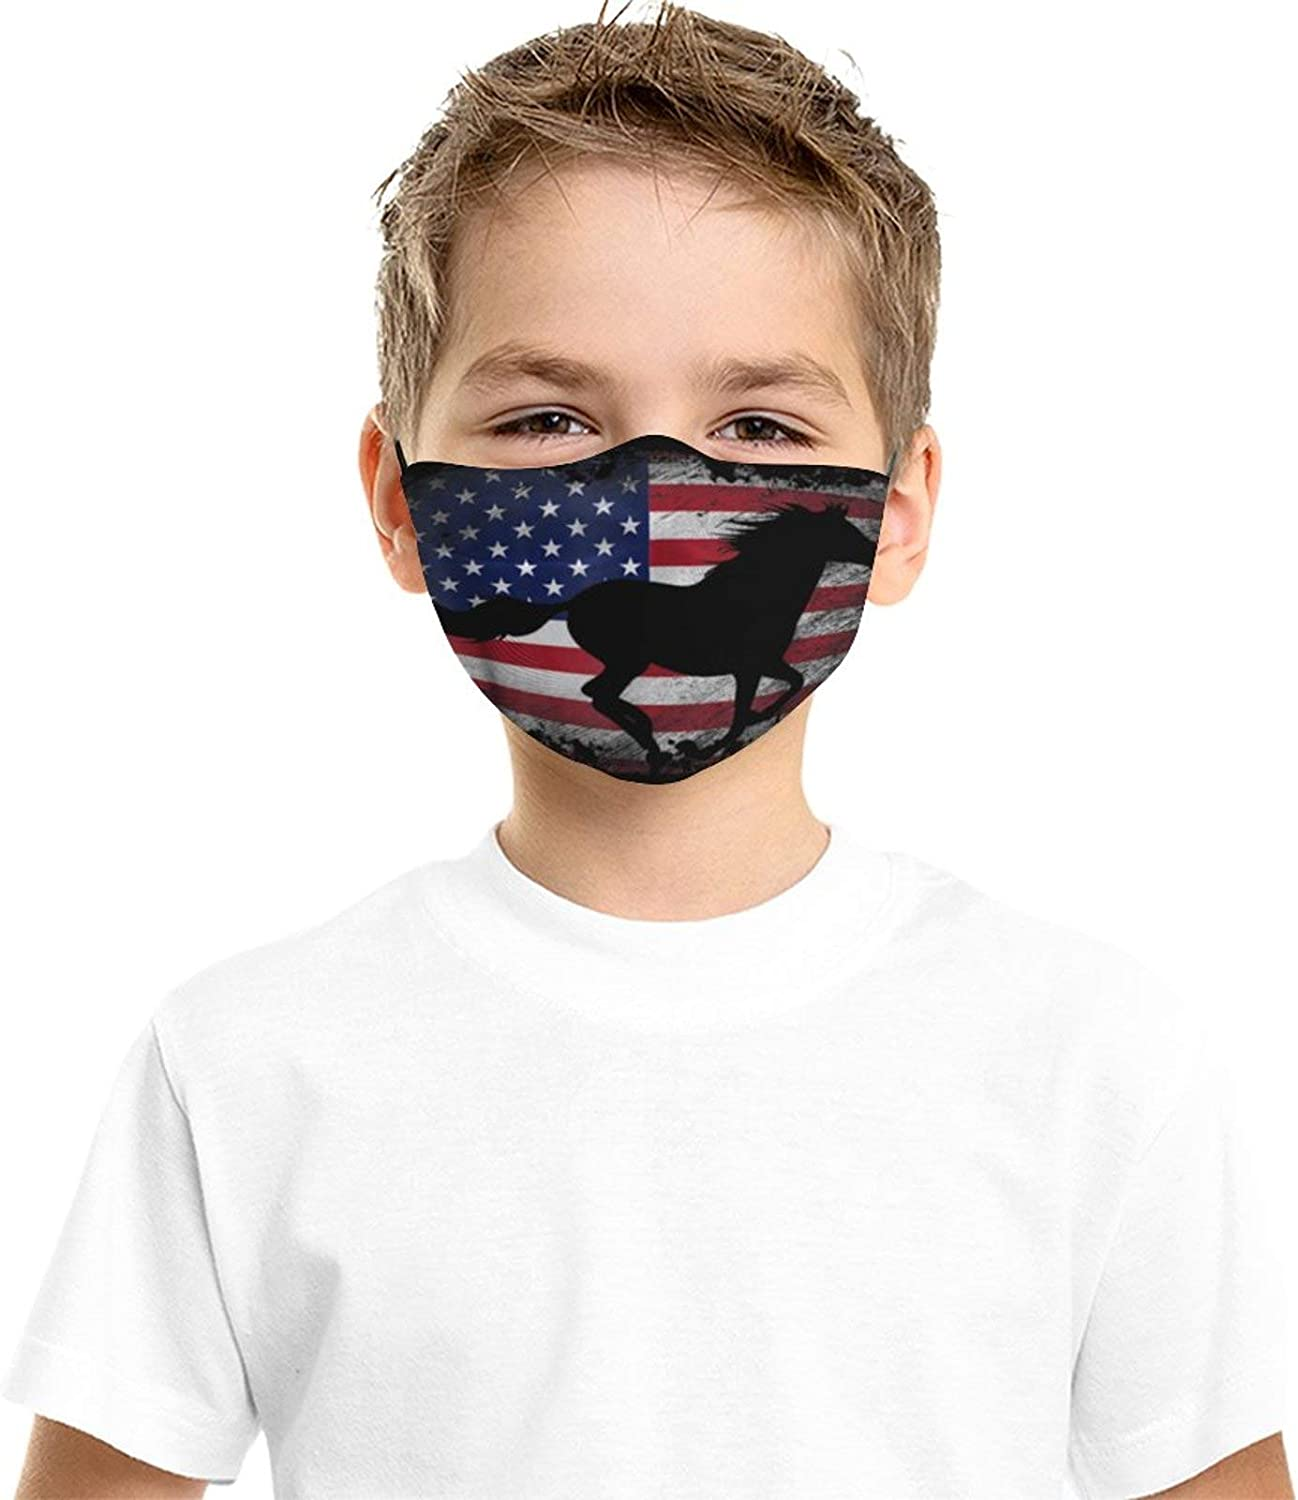 American Flag USA Patriotic Horse Kids Face Masks Set of 2 with 4 Filters Washable Reusable Breathable Black Cloth Bandanas Scarf for Unisex Boys Girls